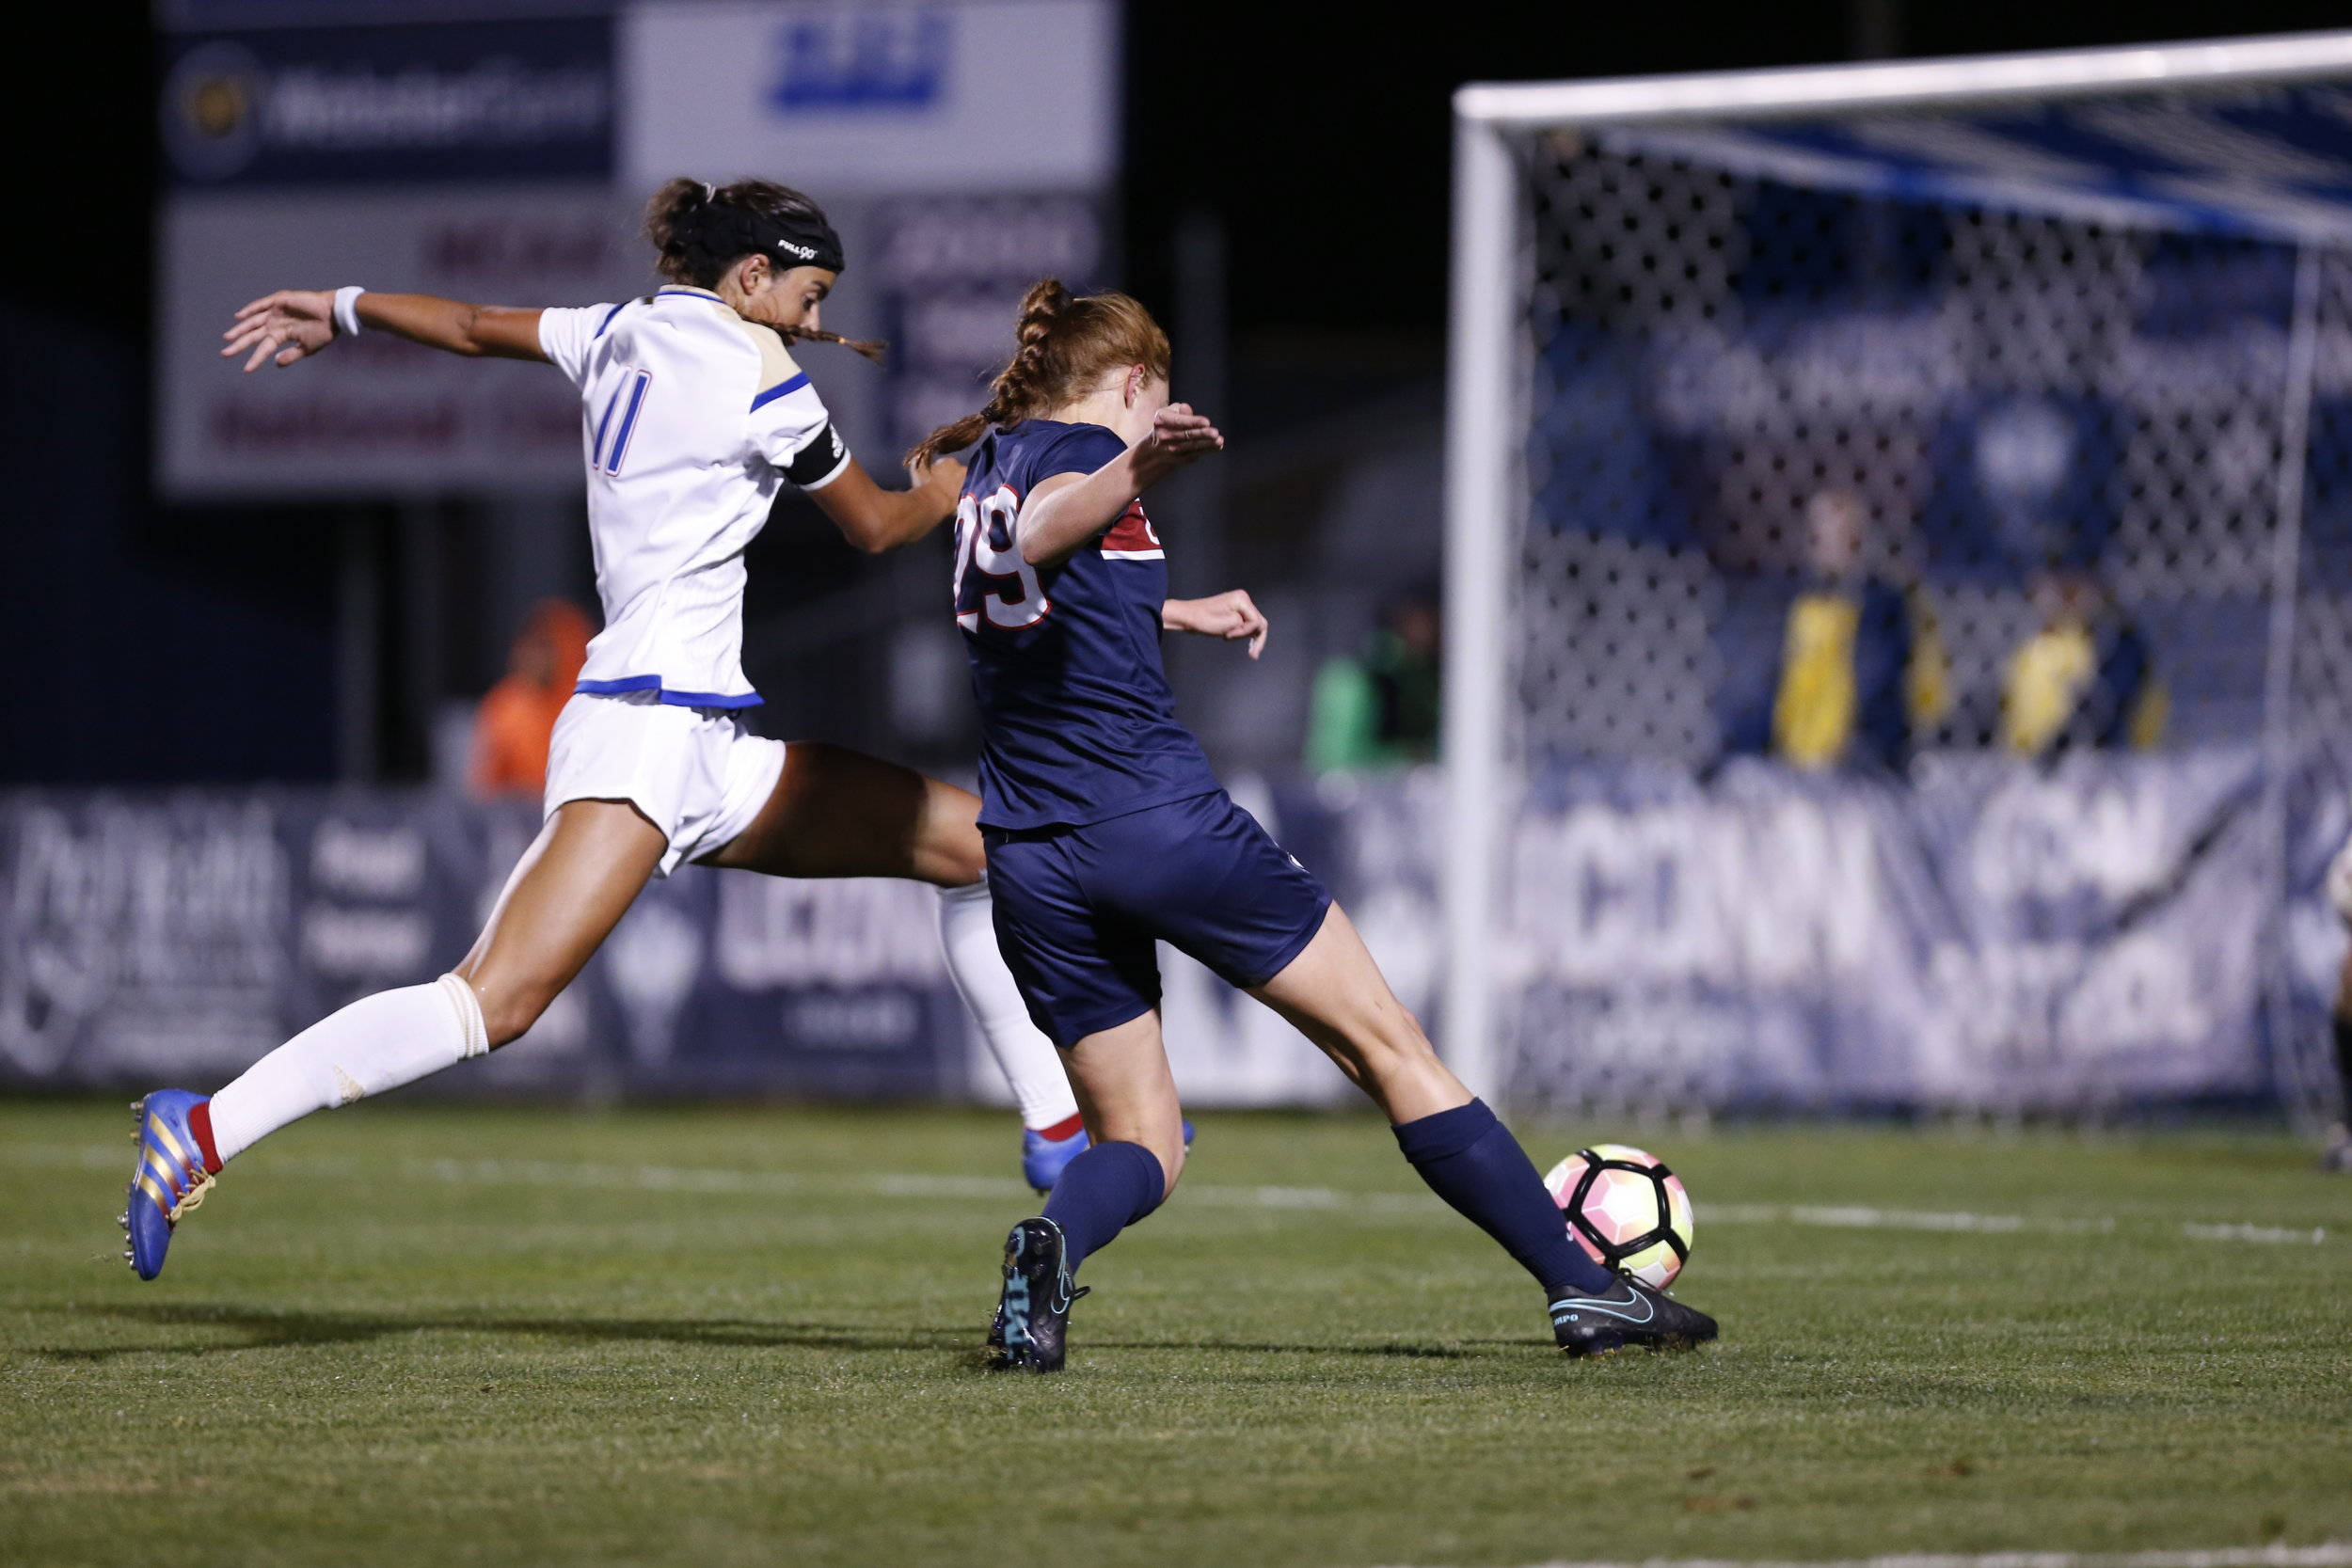 Junior forward Tanya Altrui dribbles the ball past a Tulsa defender during a 4-2 win on Thursday, Sept. 29 at Morrone Stadium. The Huskies were powered by early and late goals in the games to keep the lead the whole time. (Tyler Benton/The Daily Campus)